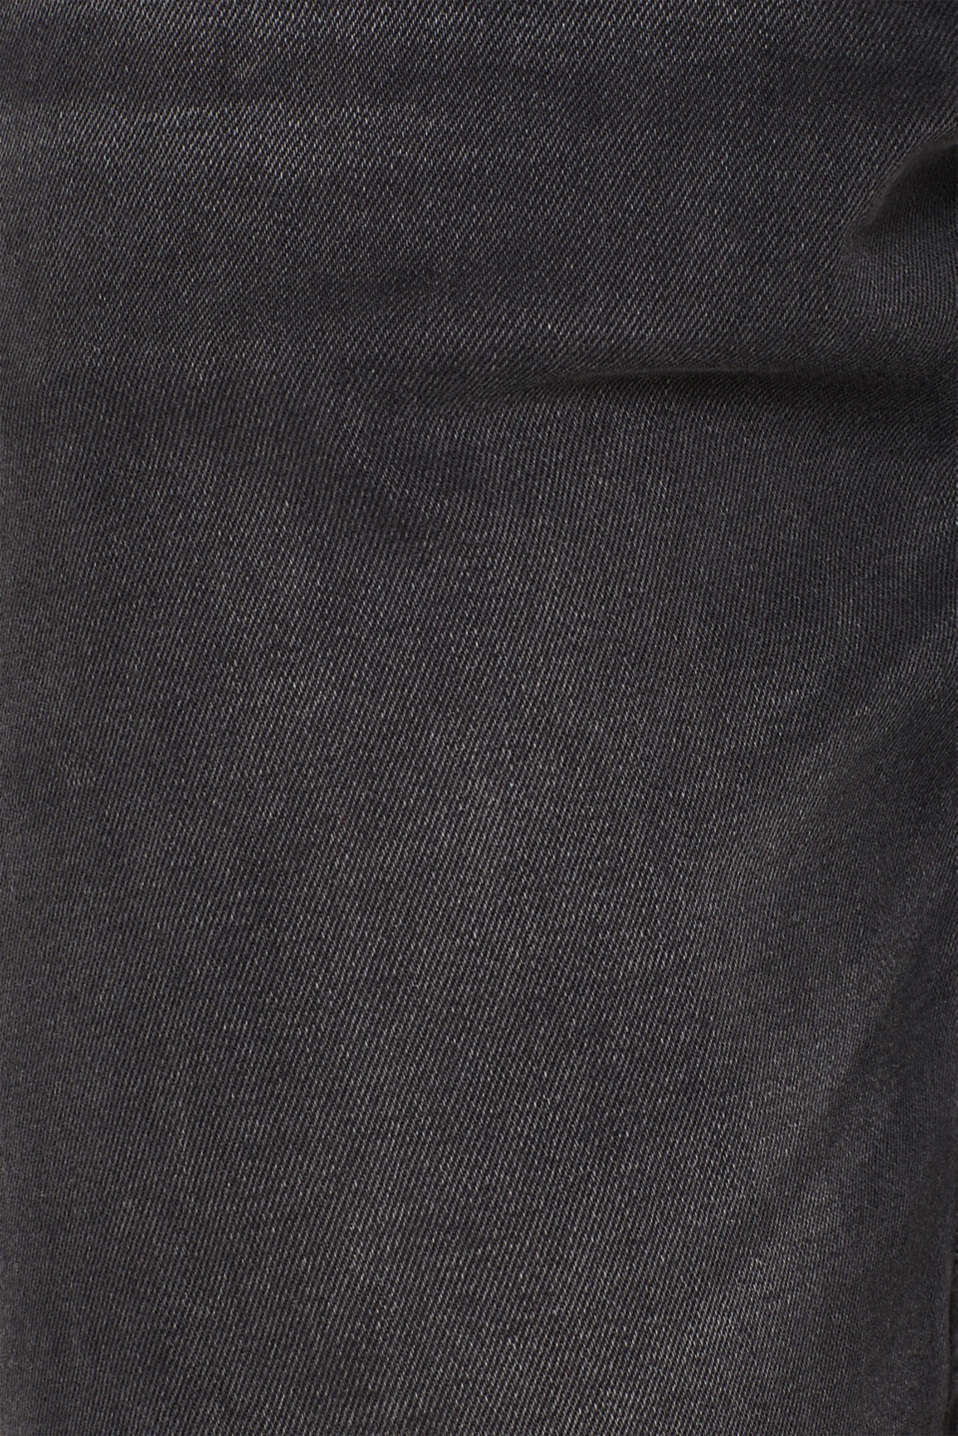 Stretch jeans containing organic cotton, GREY MEDIUM WASH, detail image number 4